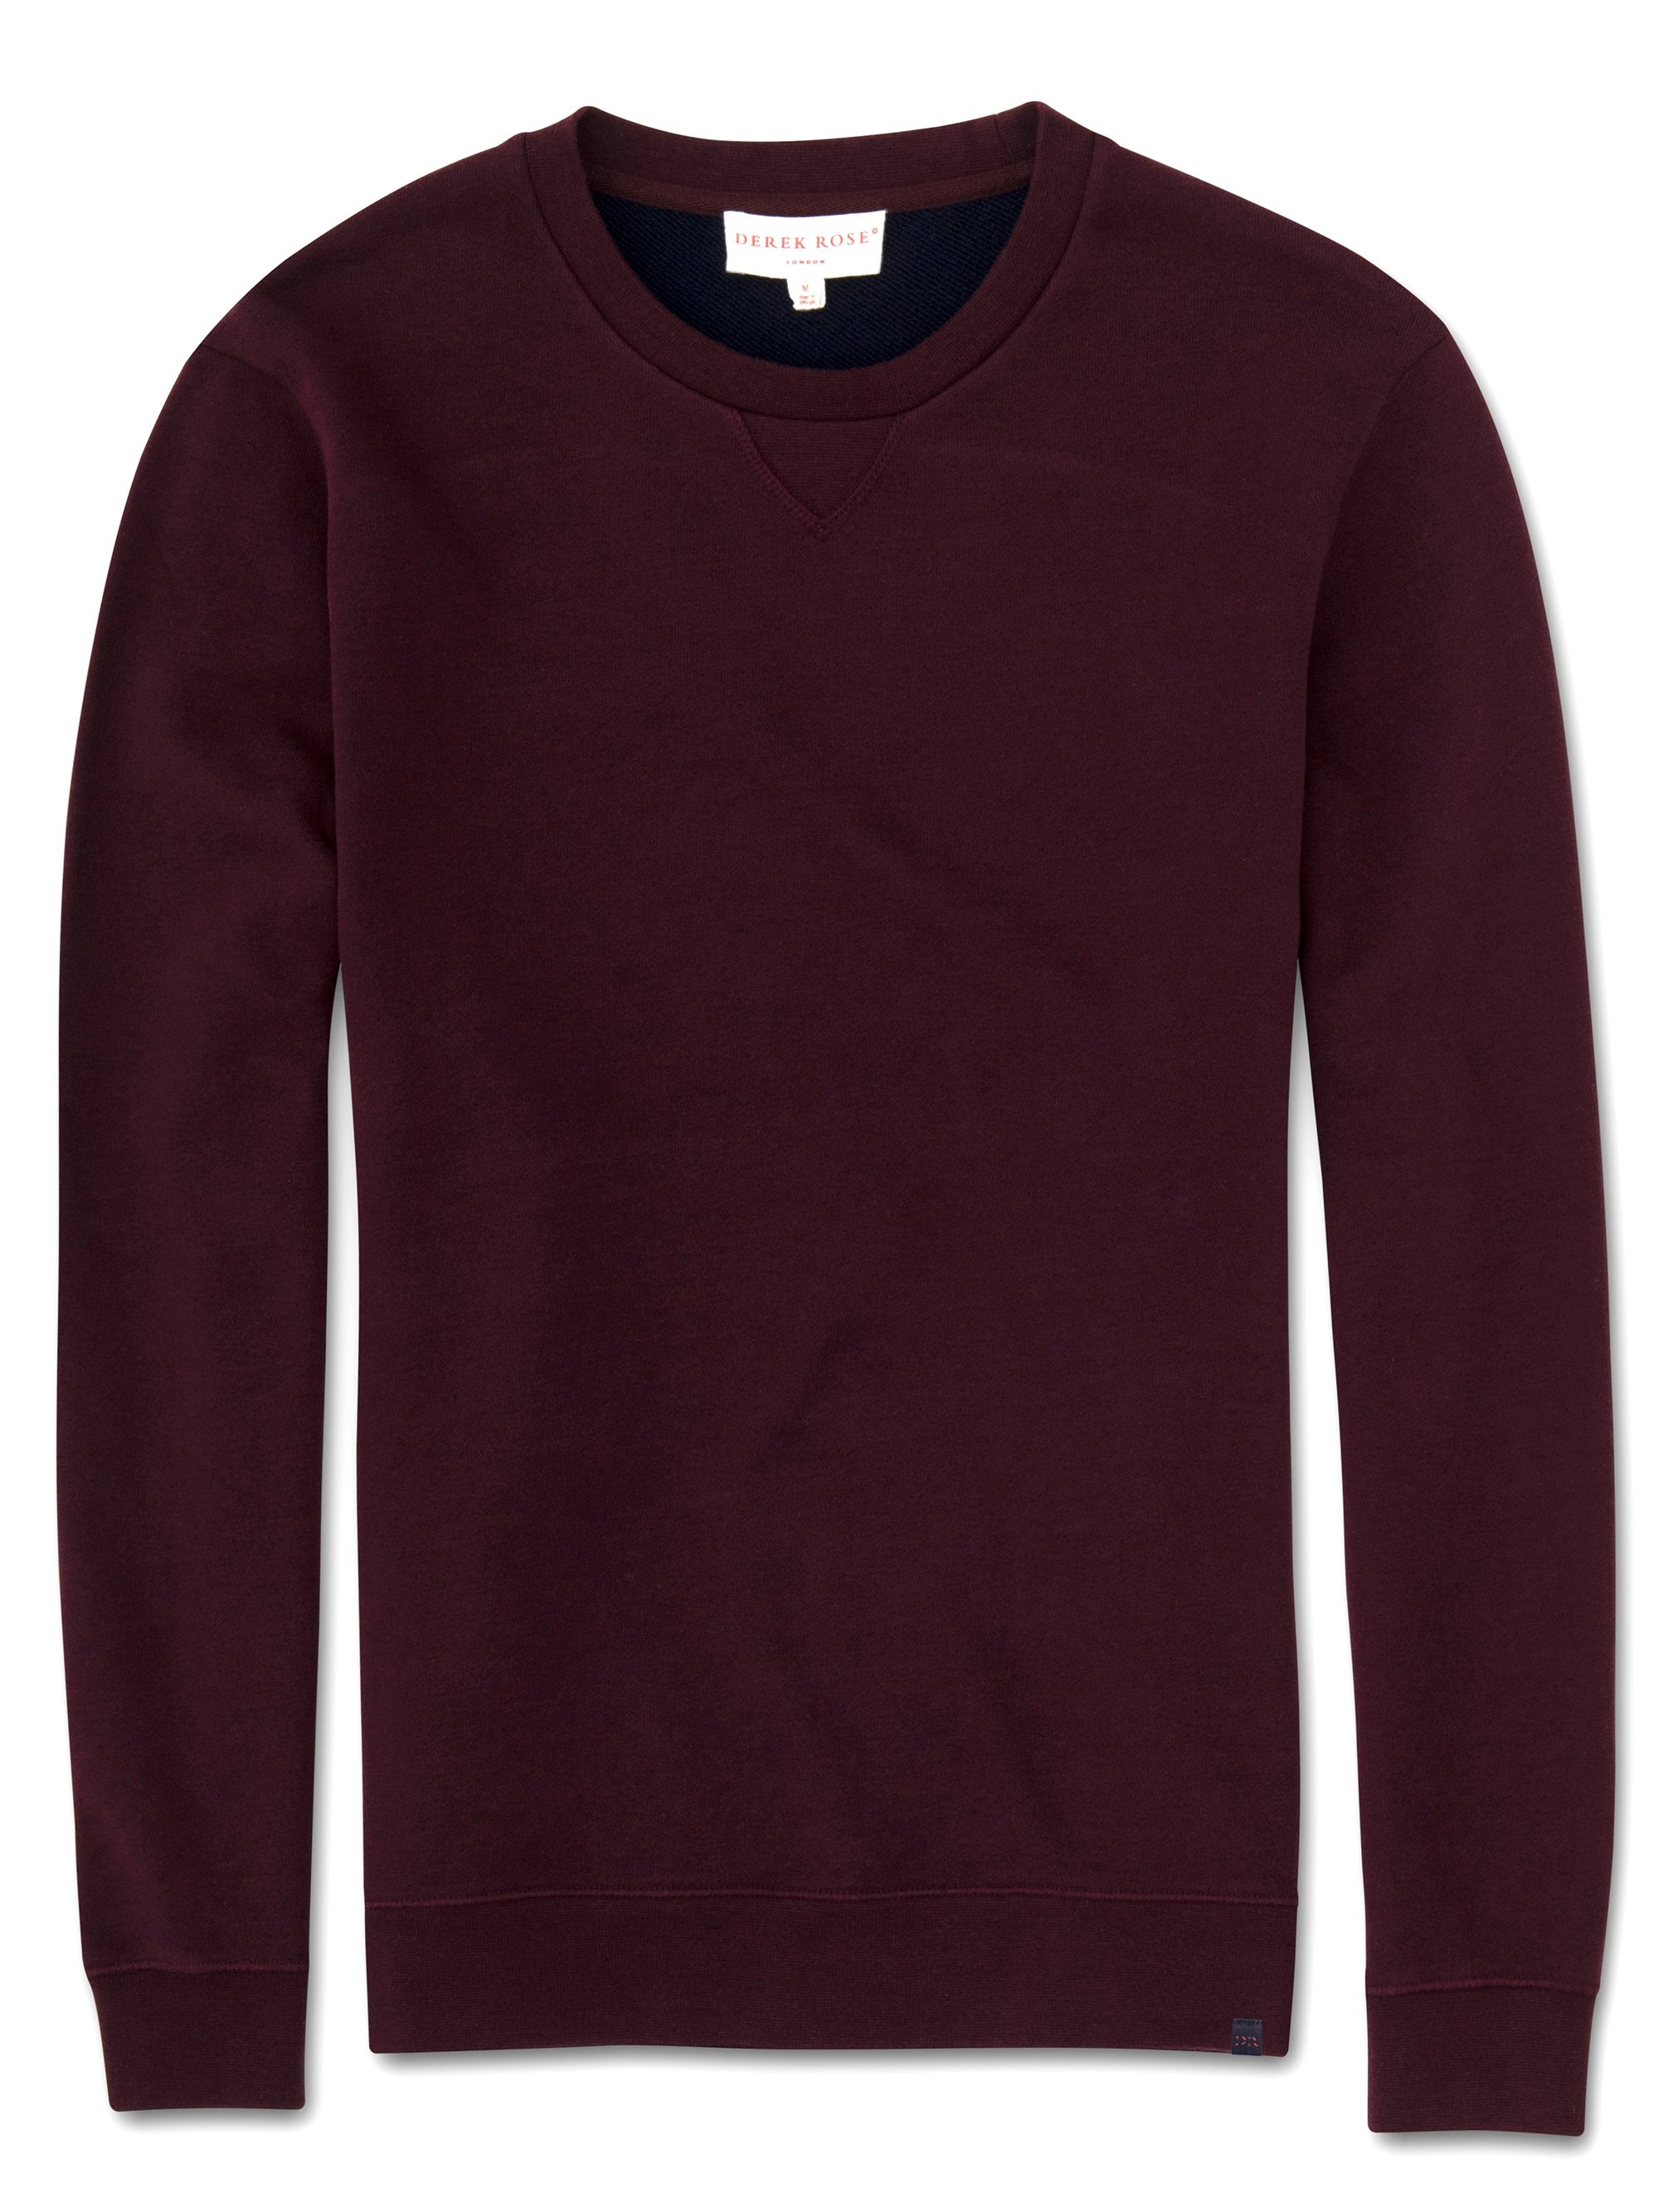 Men's Sweatshirt Devon 2 Loopback Cotton Burgundy